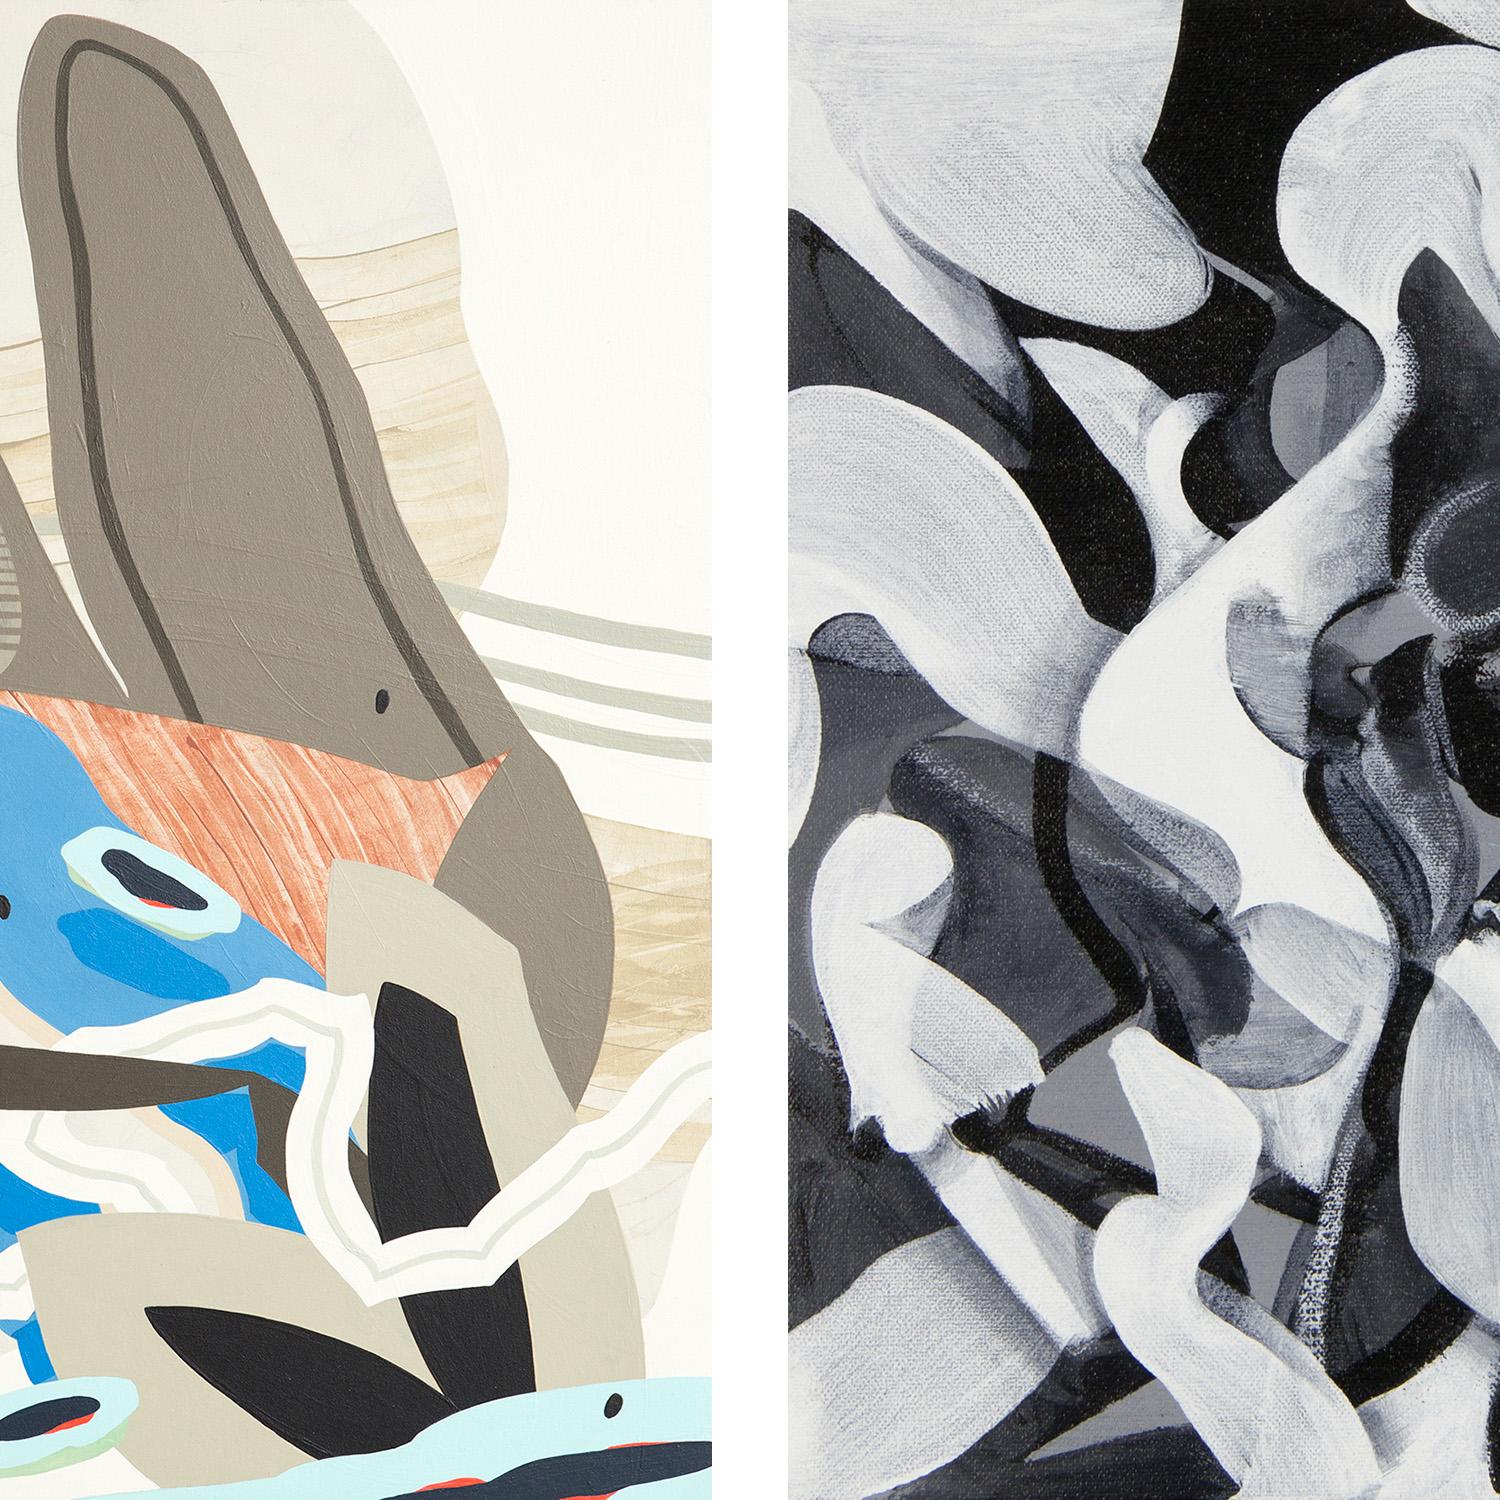 """Portion of """"Moving In Silence 1"""" by Ruben Aguirre (left) and portion of """"Untitled"""" by Victor Lopez (right)"""